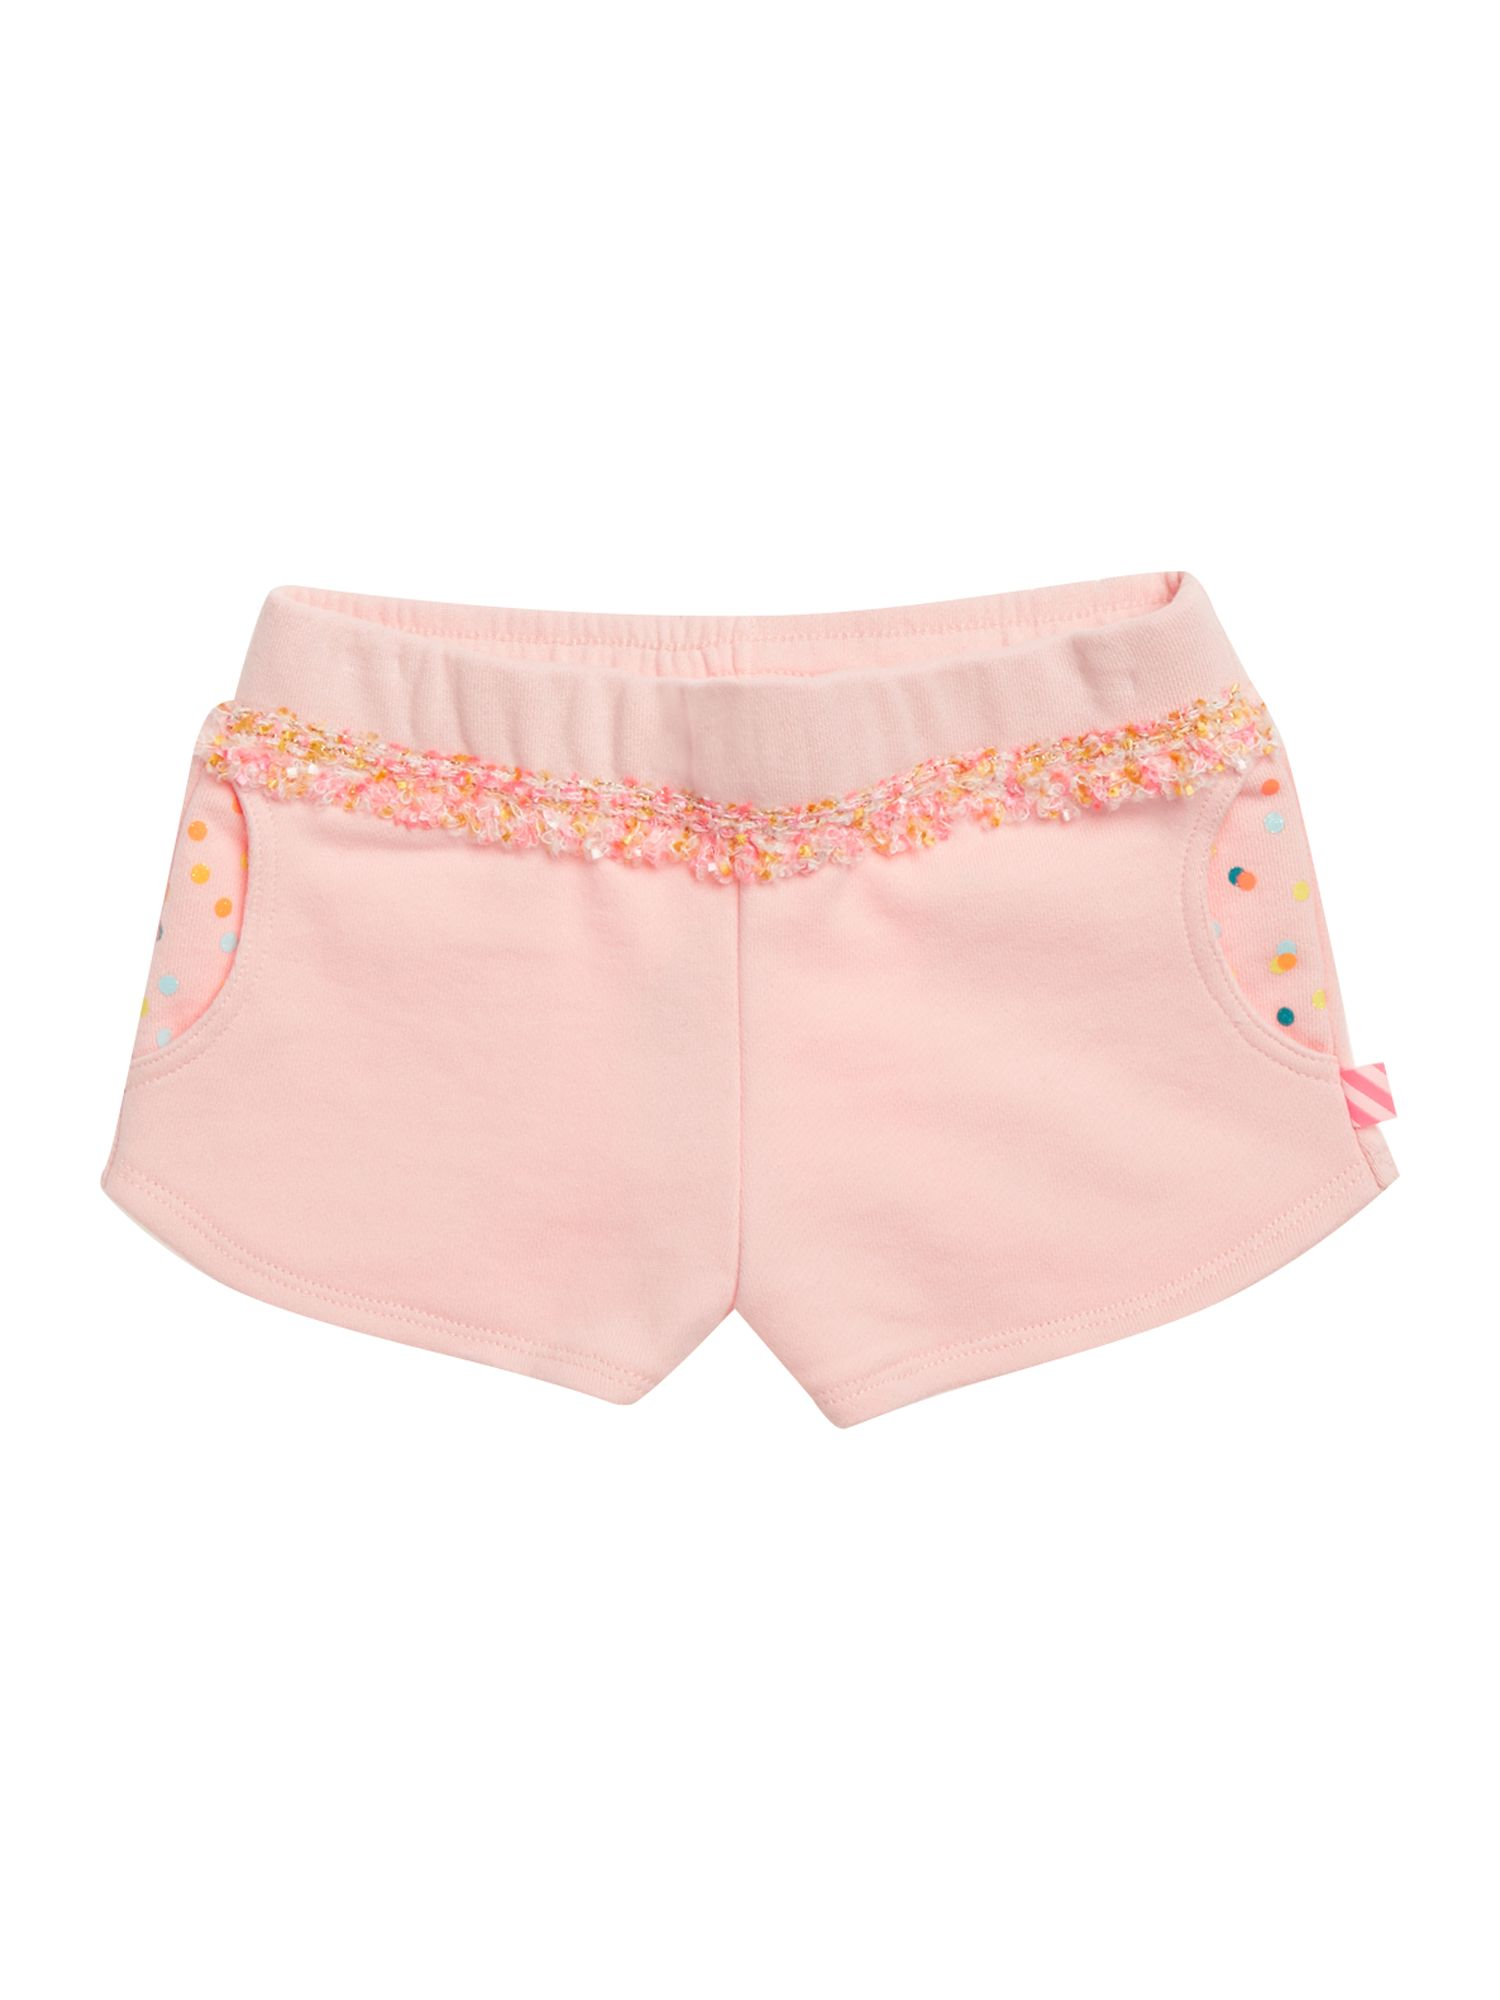 Billieblush Billieblush Girls Shorts, Pink